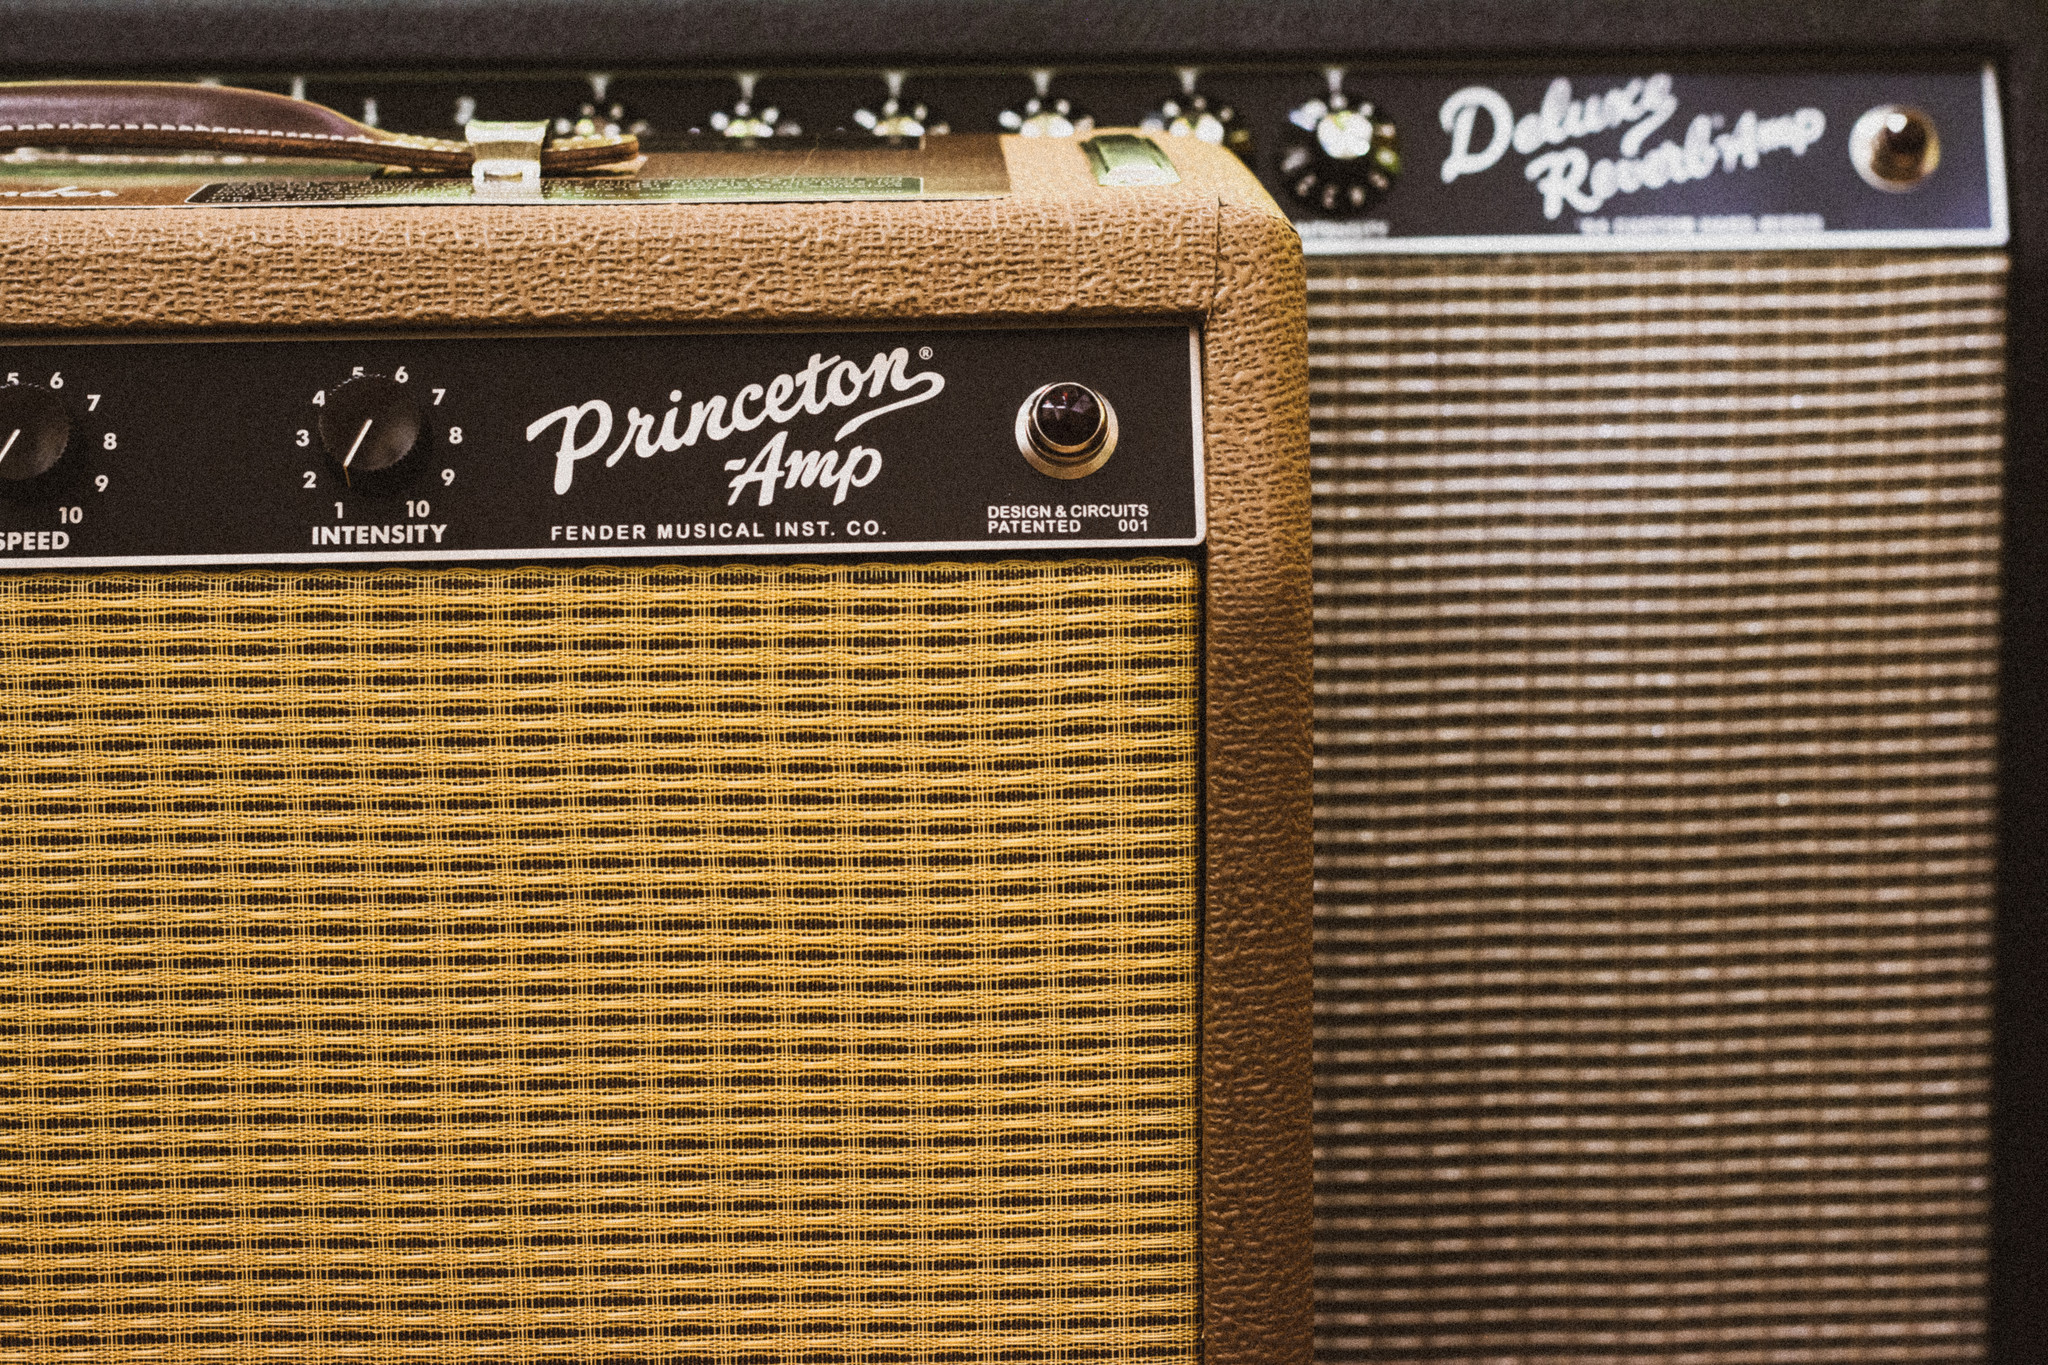 Fender Hand-Wired Amps